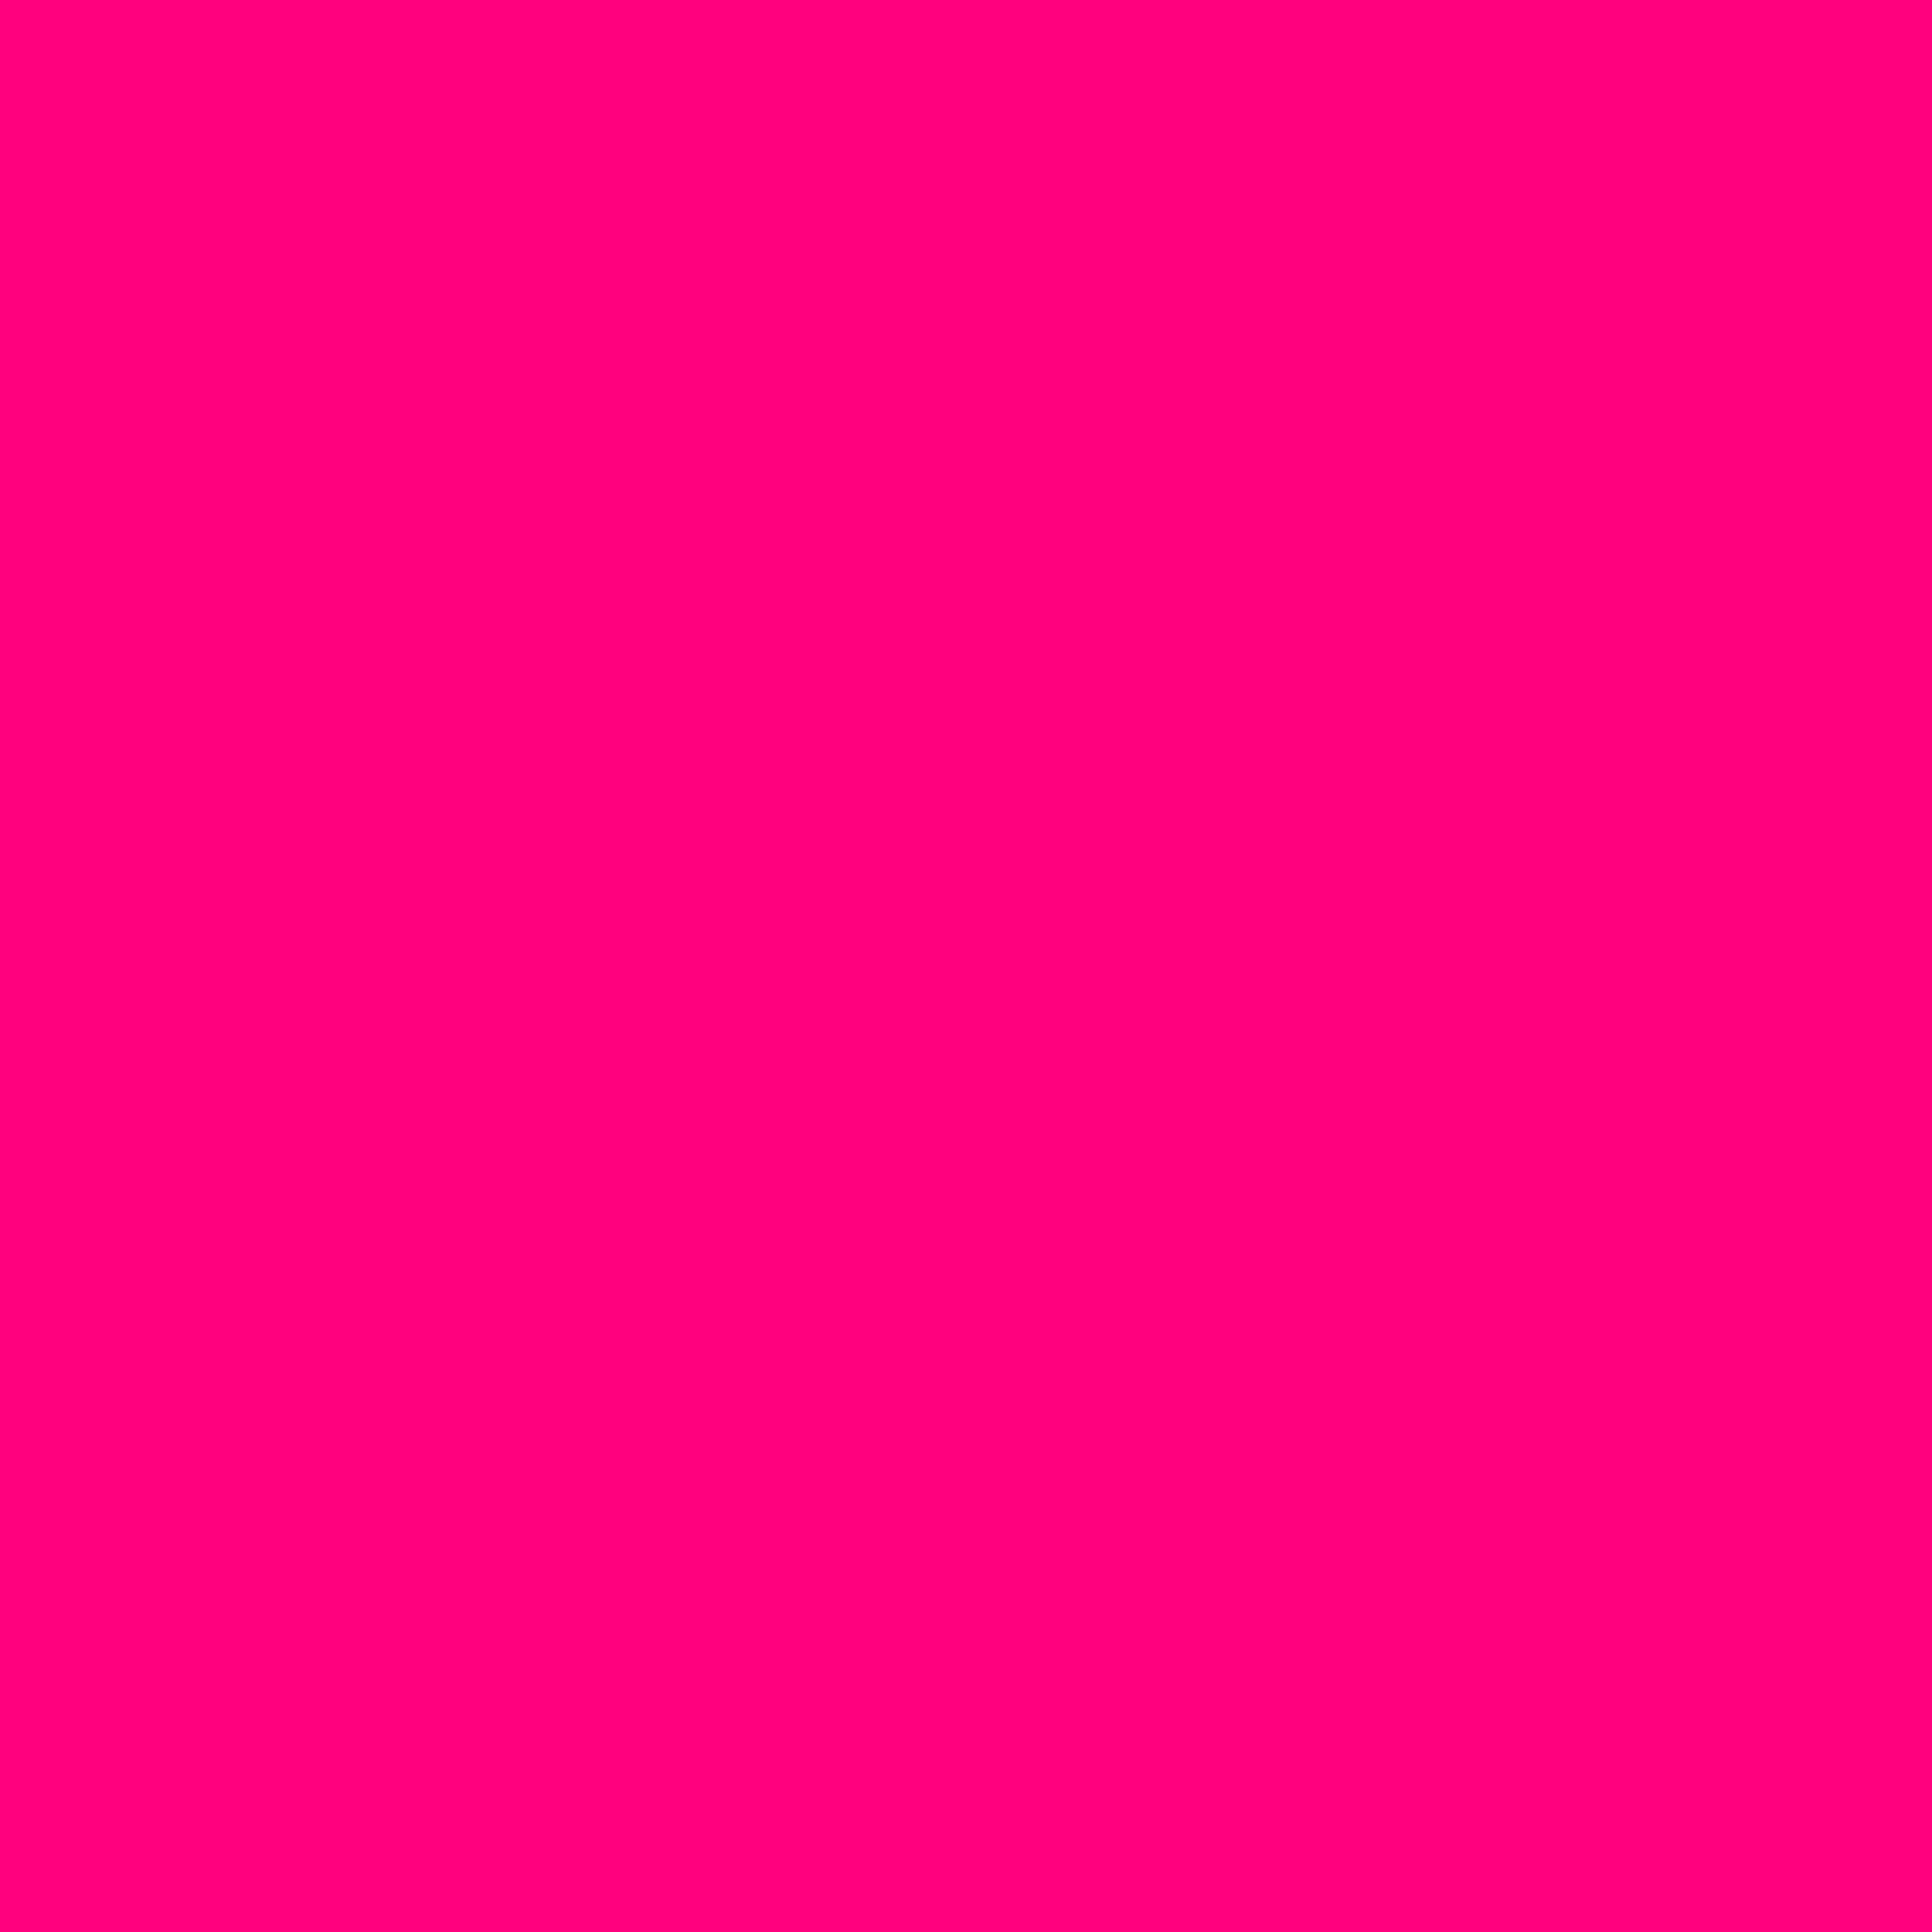 3600x3600 Bright Pink Solid Color Background